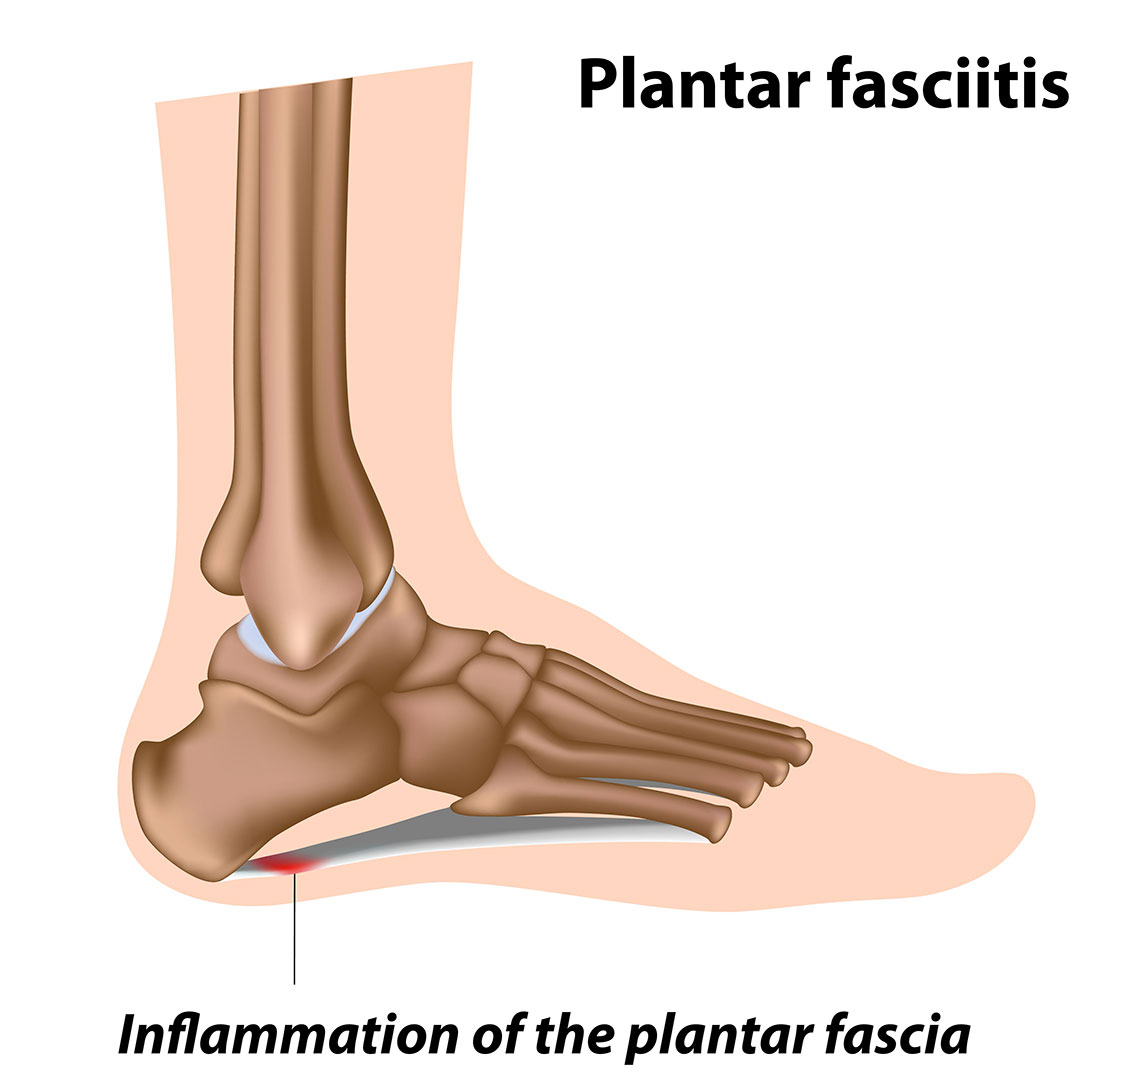 an illustration showing an inflammation of plantar fascia in a foot, the condition is known as plantar fasciitis